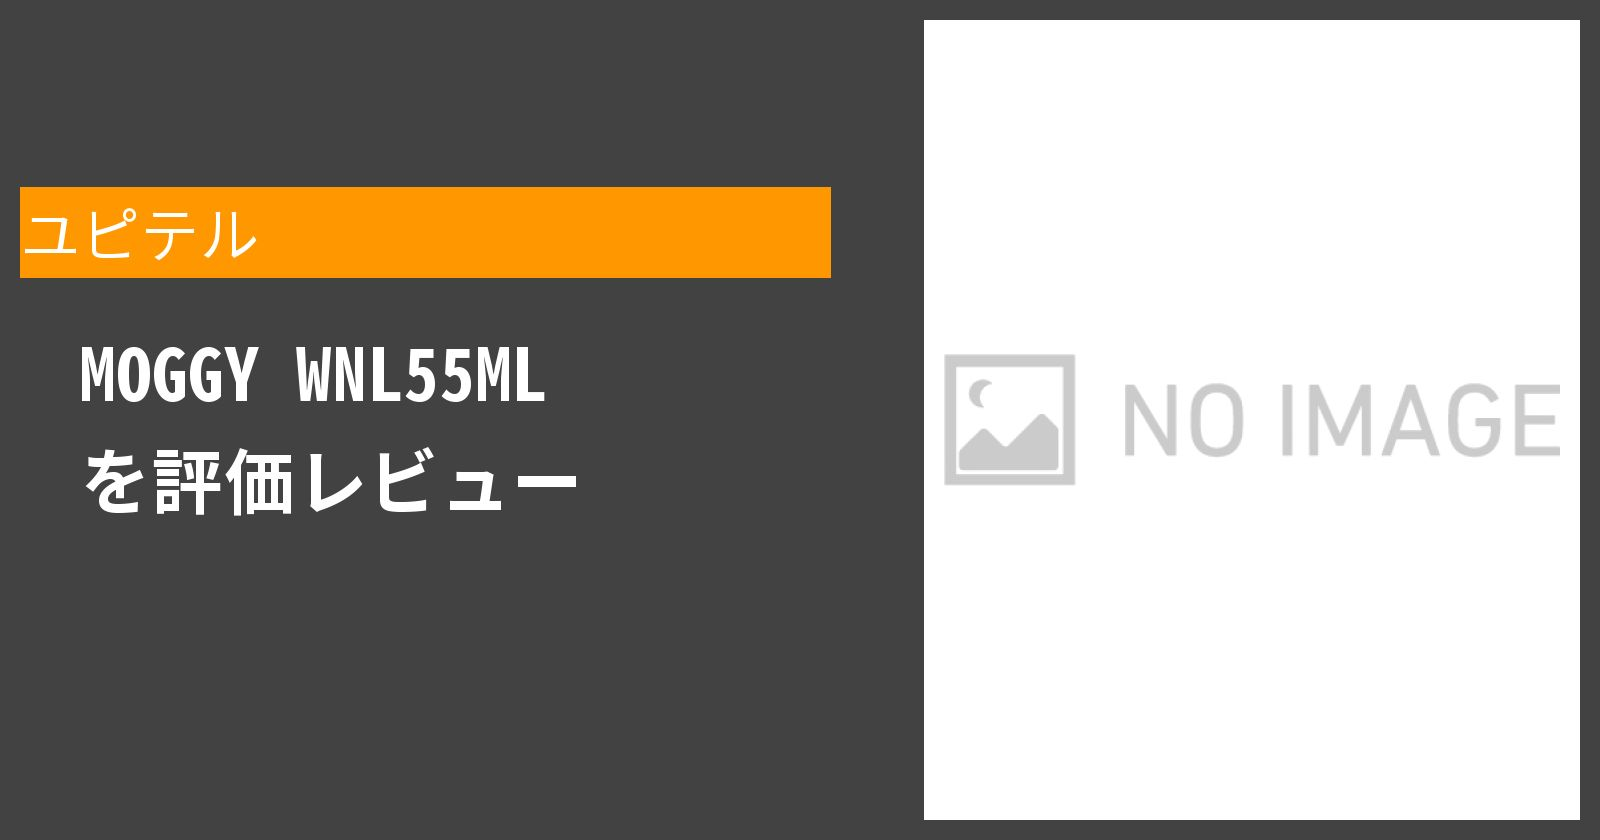 MOGGY WNL55MLを徹底評価